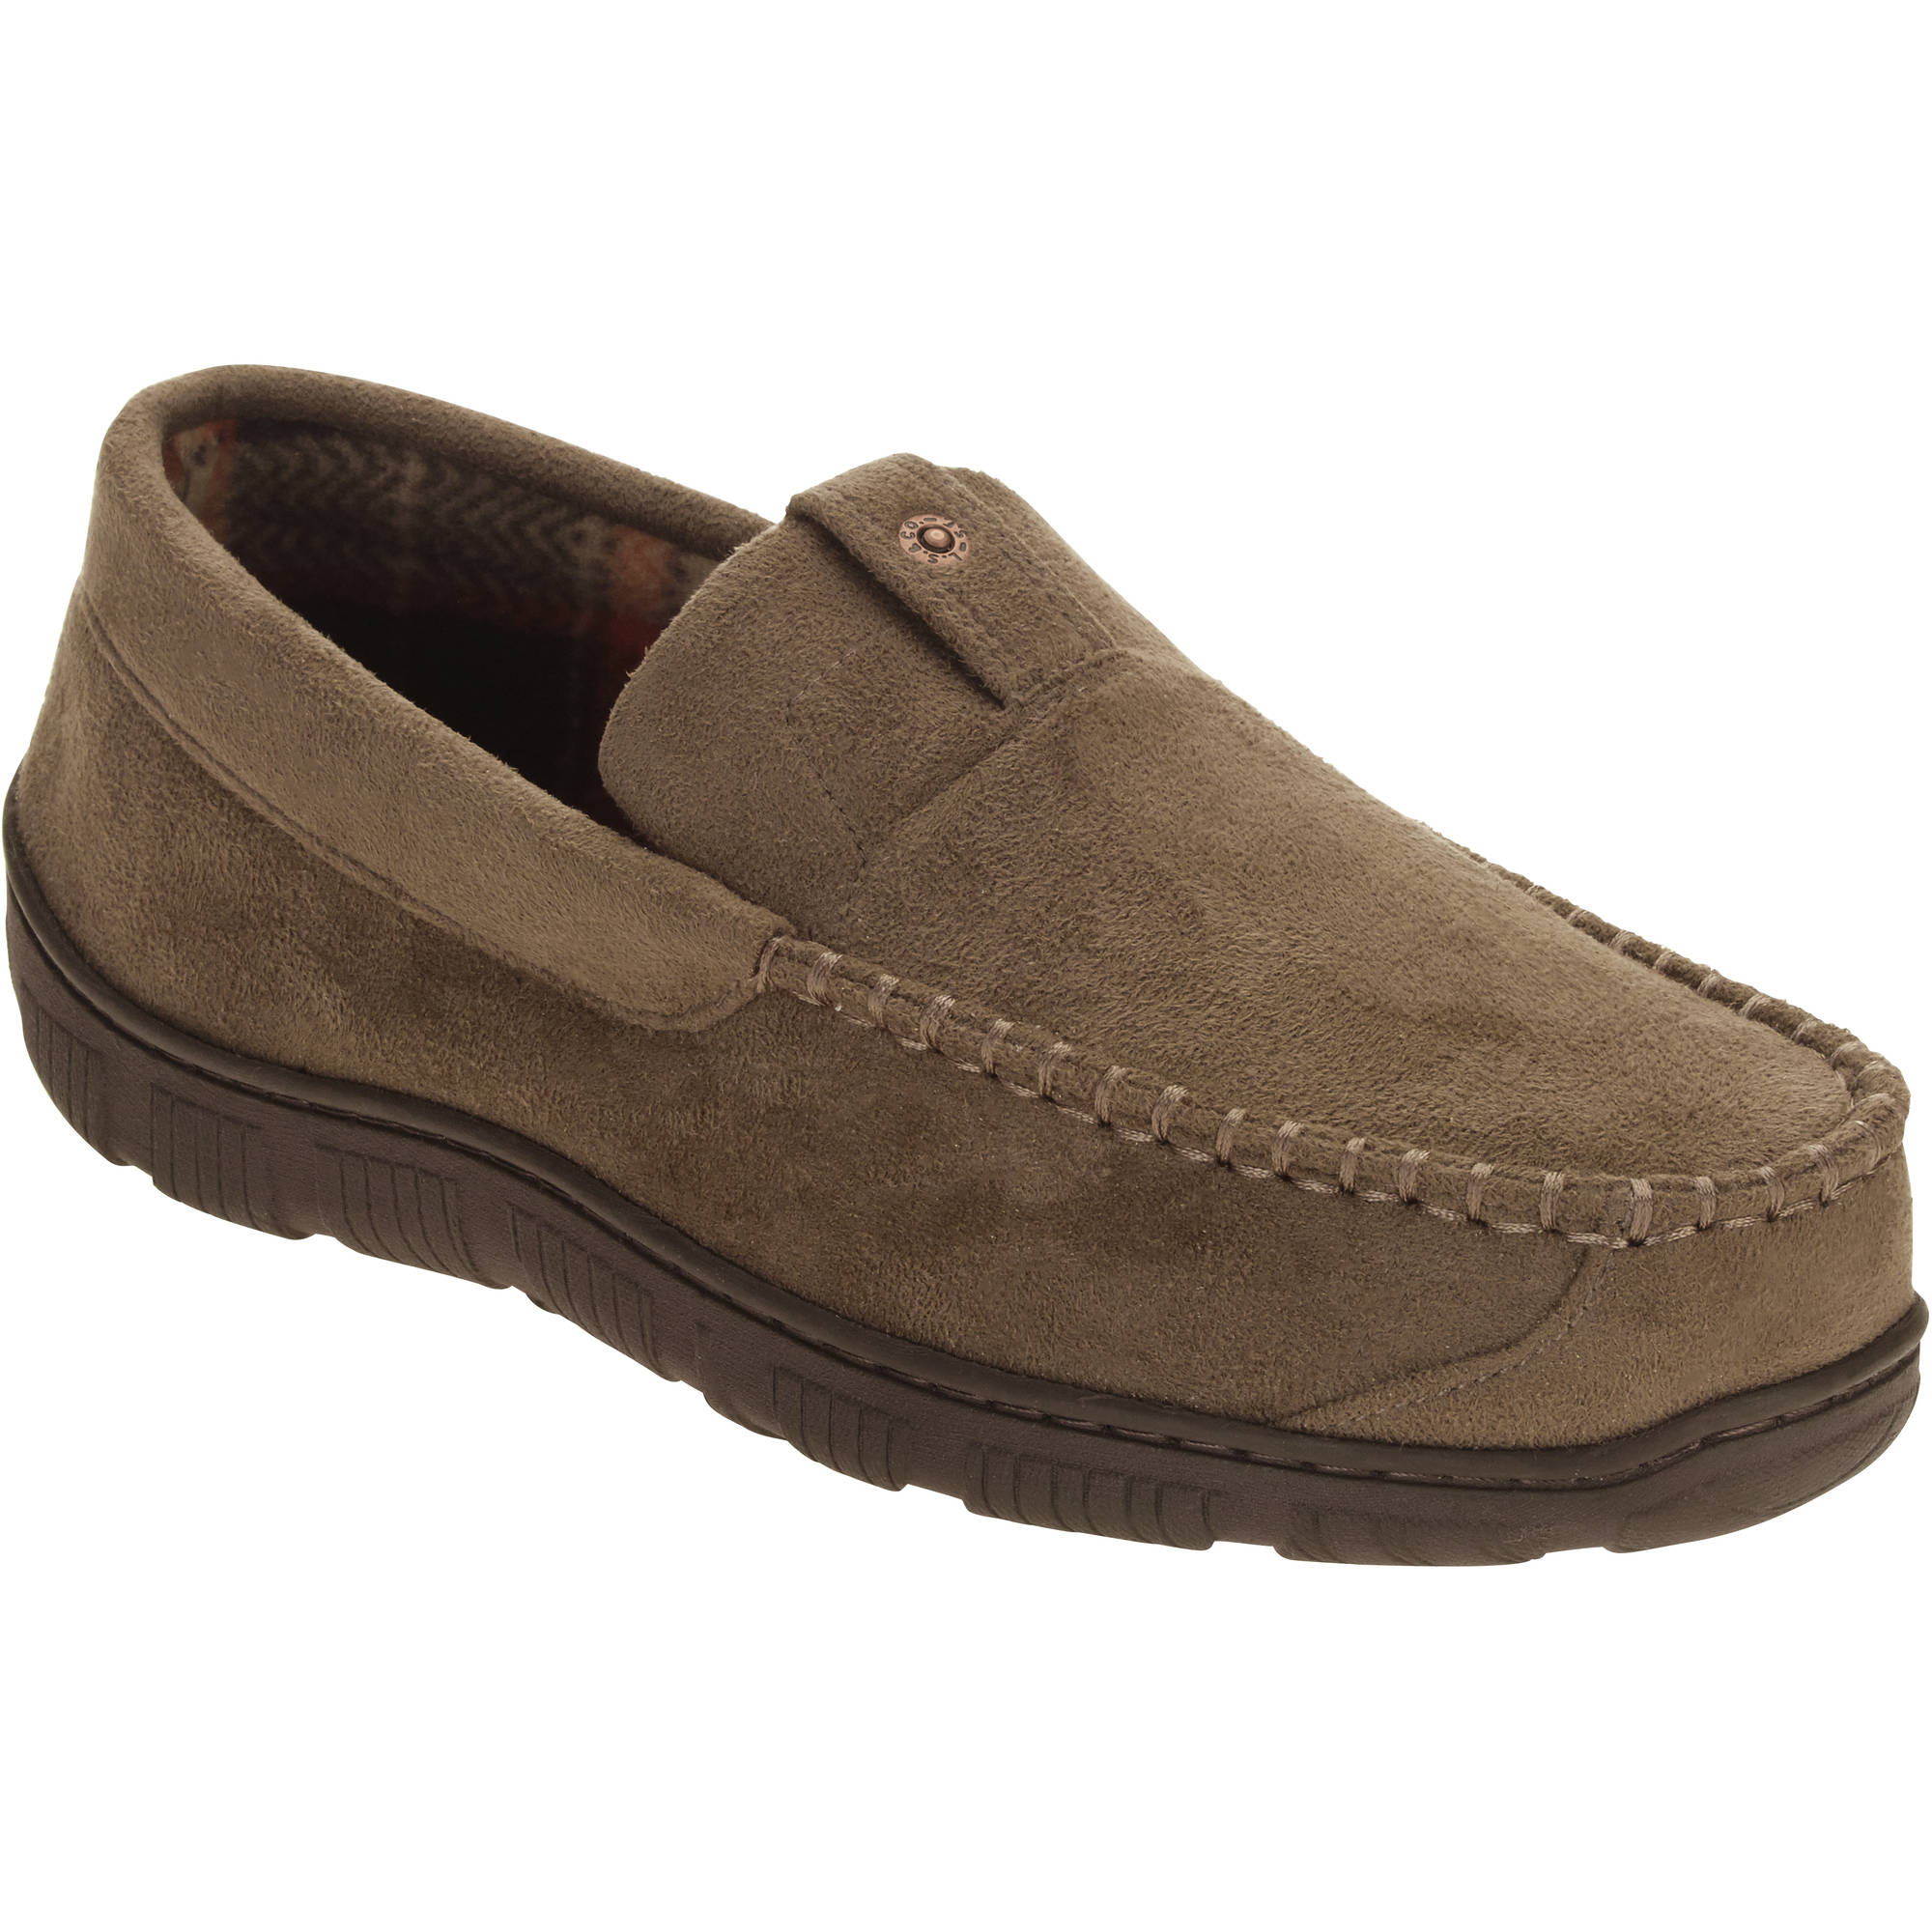 Signature by Levi's Men's Venetian Moccasin Slipper